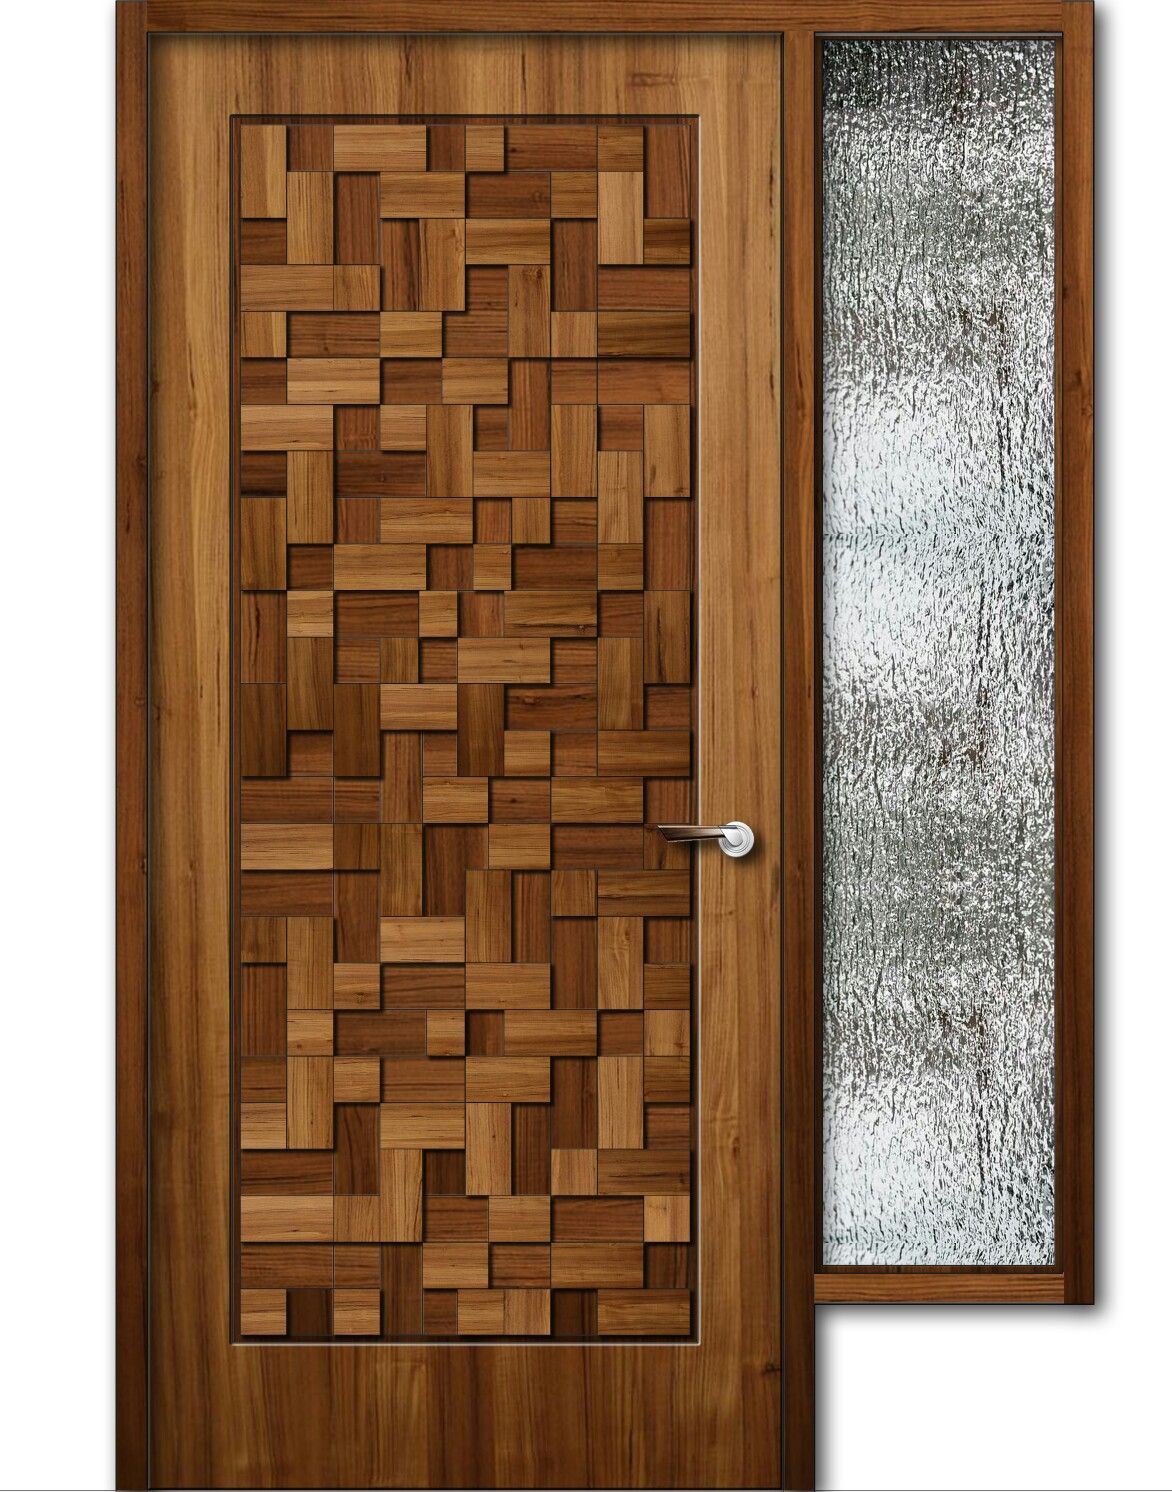 Teak wood finish wooden door with window 8feet height for Main door design latest